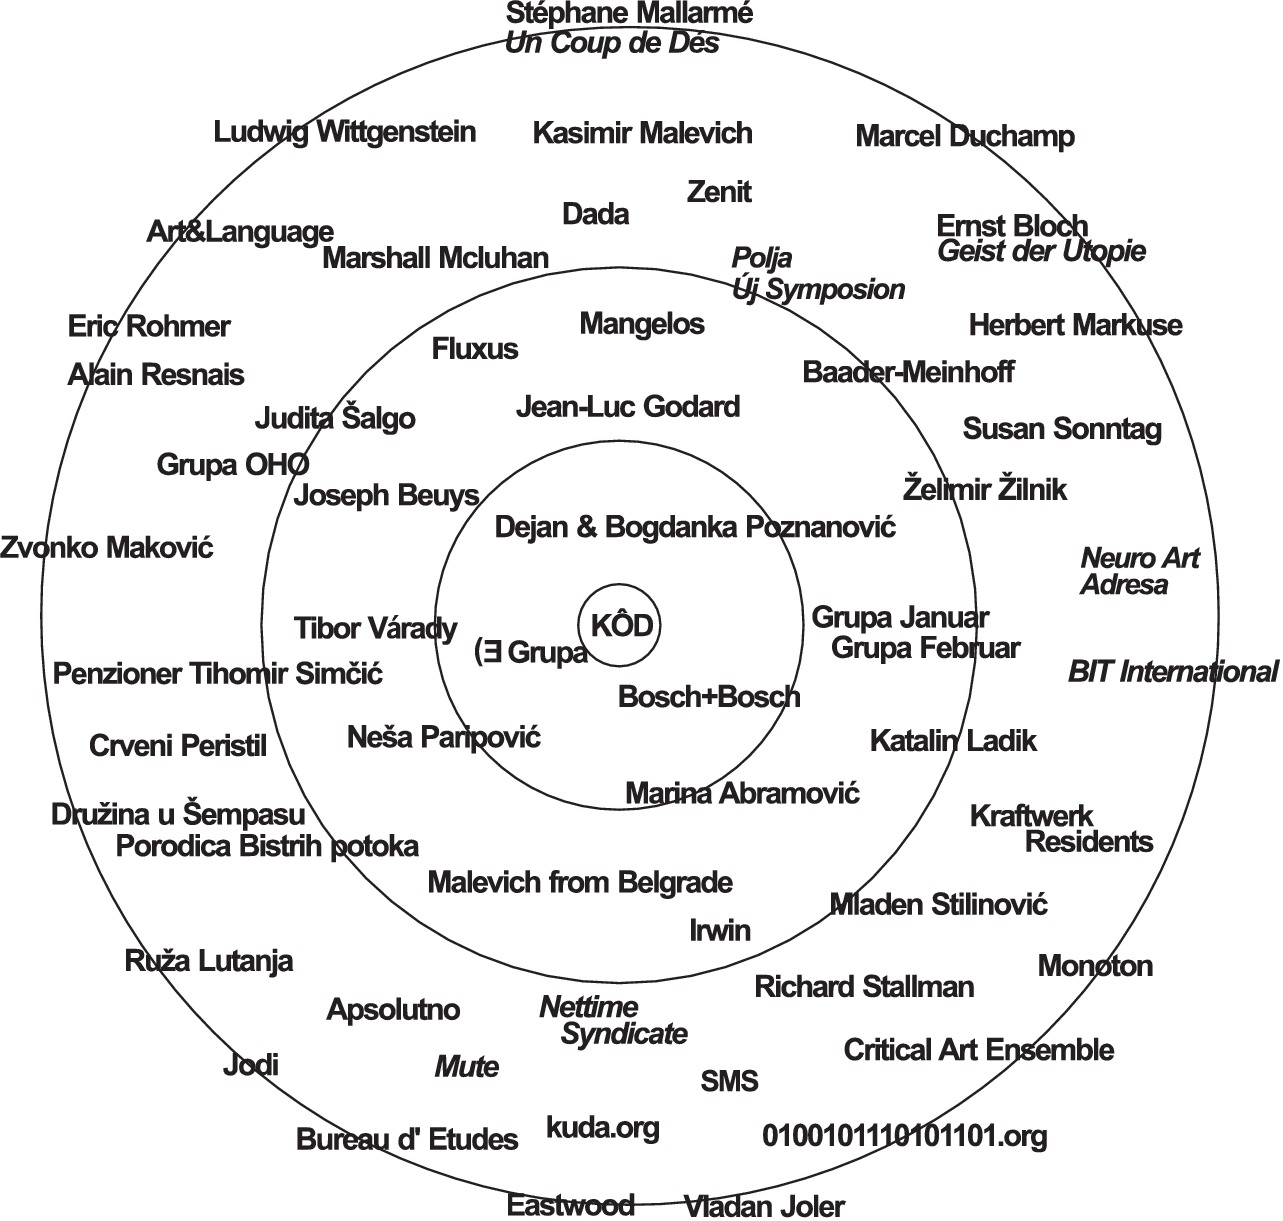 The map here originates from the research of the Continuous Arts Class project. The map represents a network of actors and references within the artistic, social and political theory and practice that made a strong impact on the Novi Sad neo-avantgarde of the 1960s and 1970s. The map covers historical avantgarde movements and arts from the early 20th Century, through the postwar avantgarde, up to contemporary artistic production.